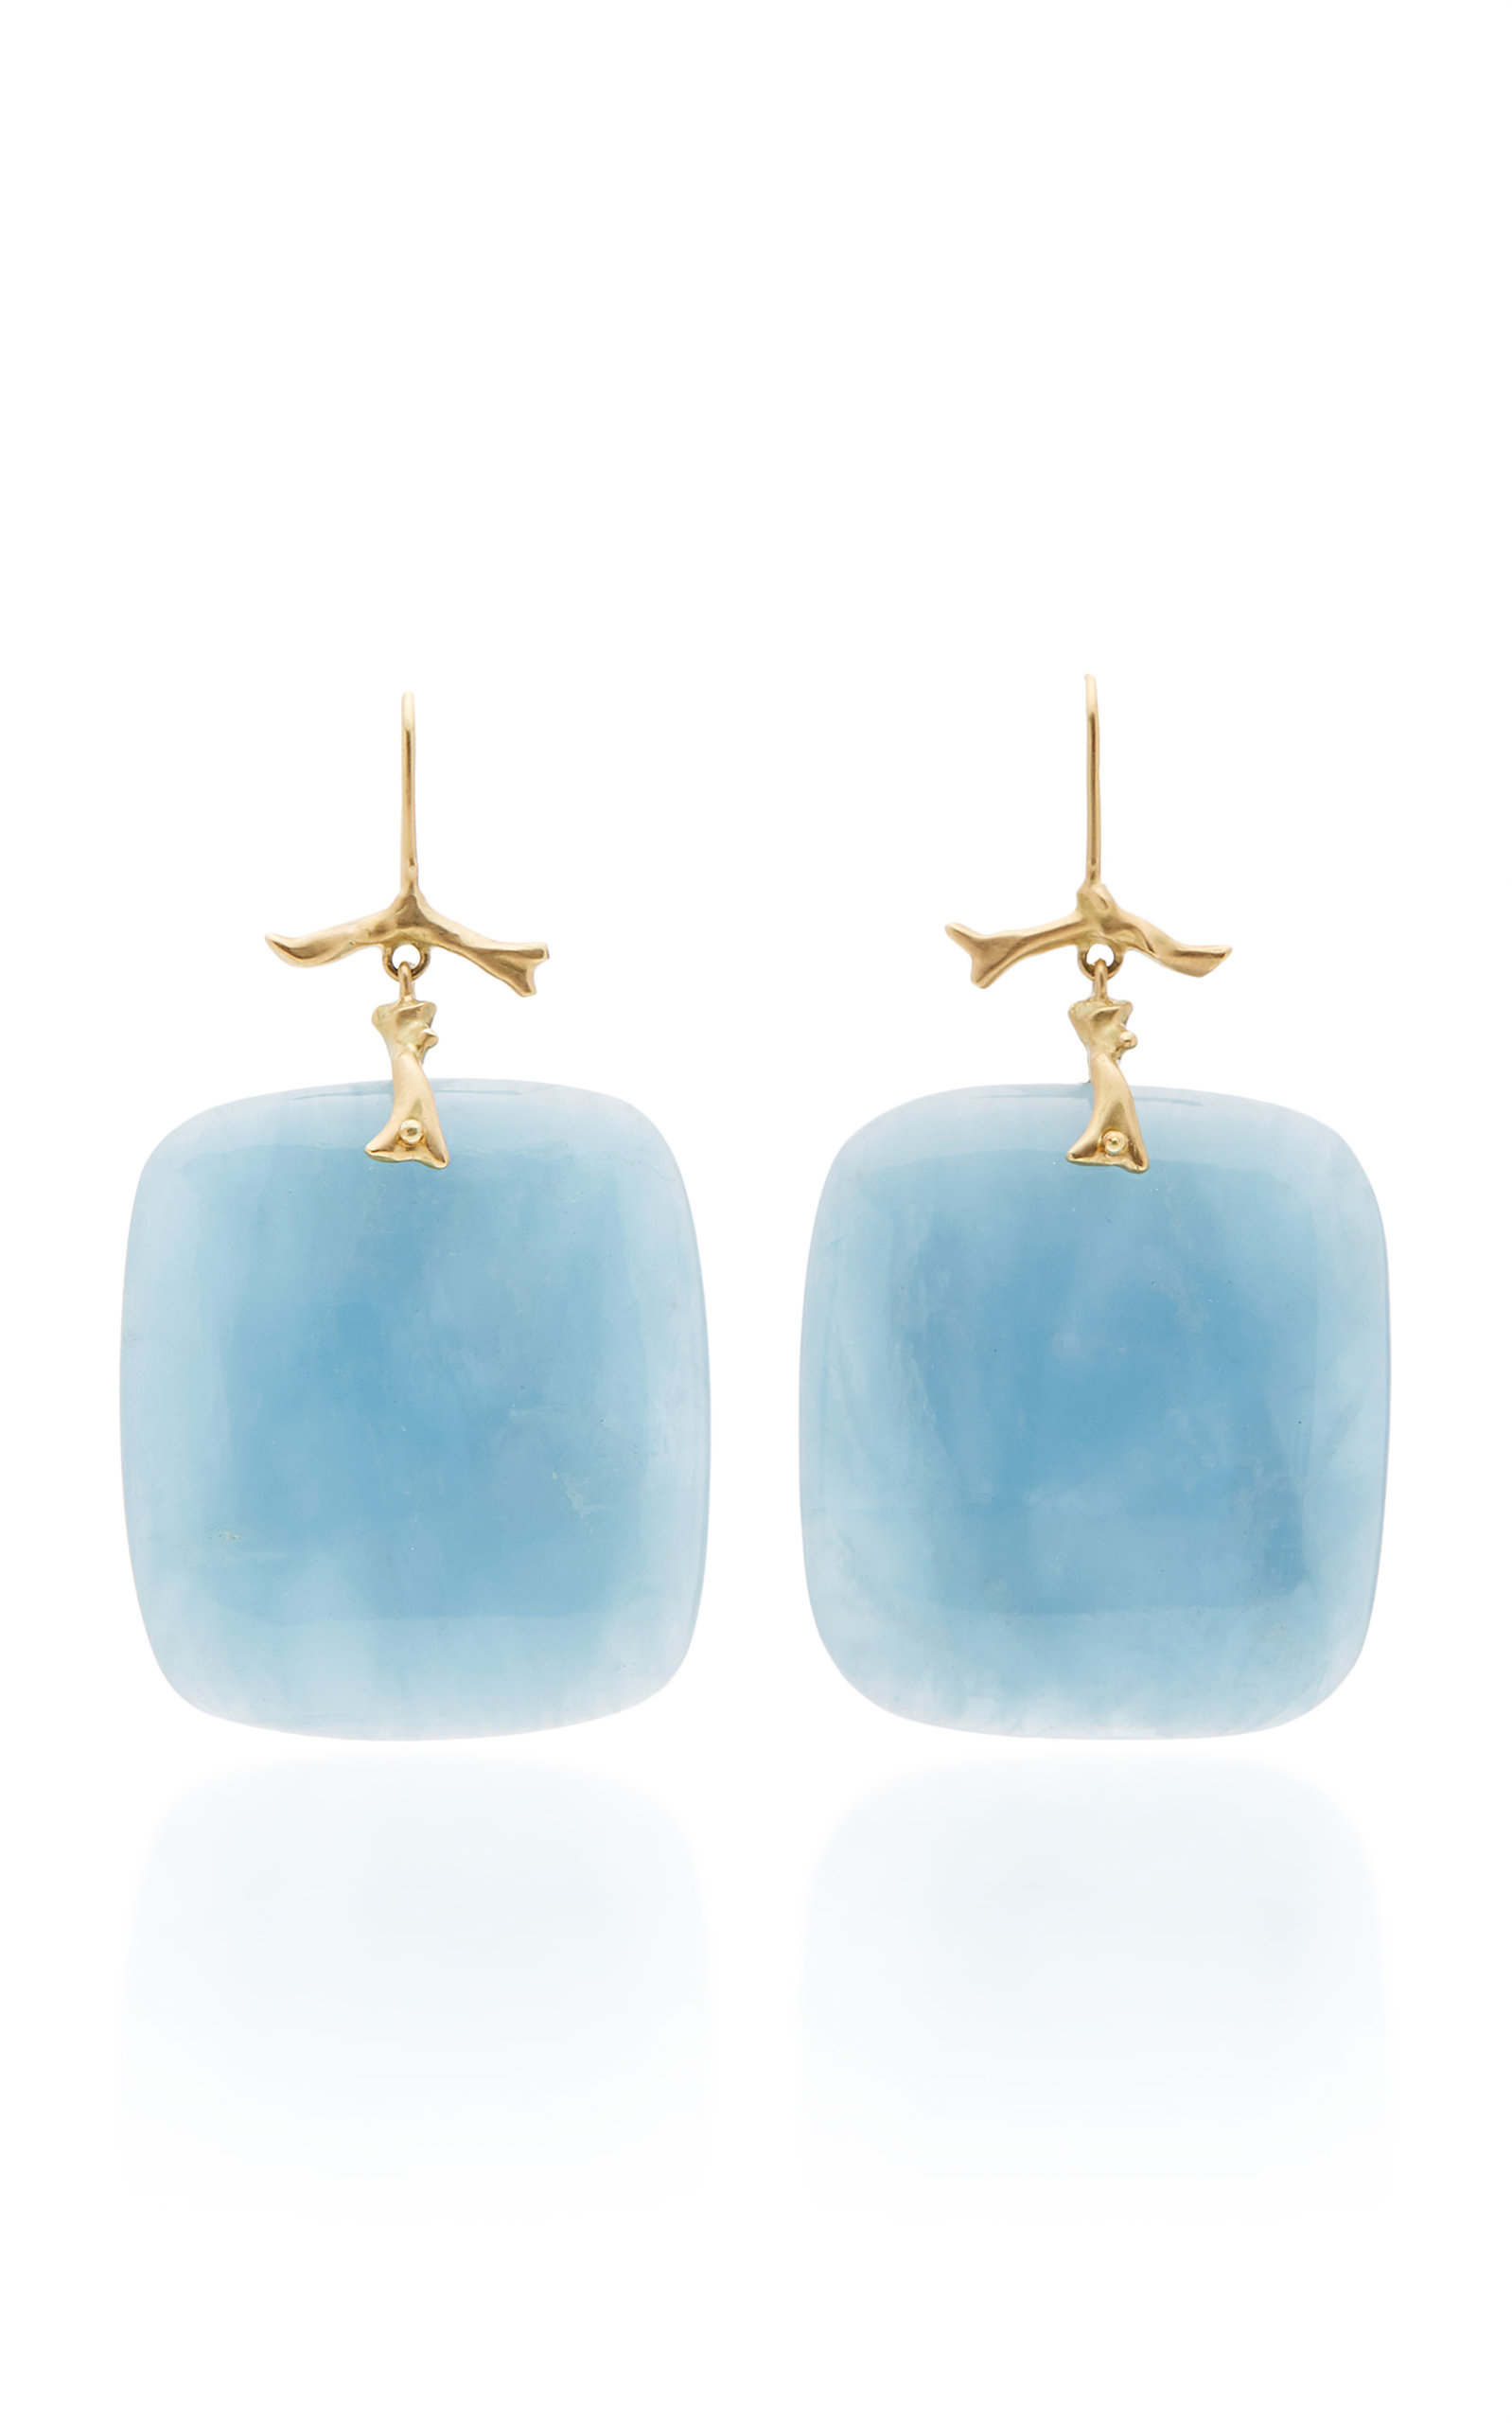 ANNETTE FERDINANDSEN M'O EXCLUSIVE: ONE-OF-A-KIND AQUAMARINE BRANCH EARRINGS